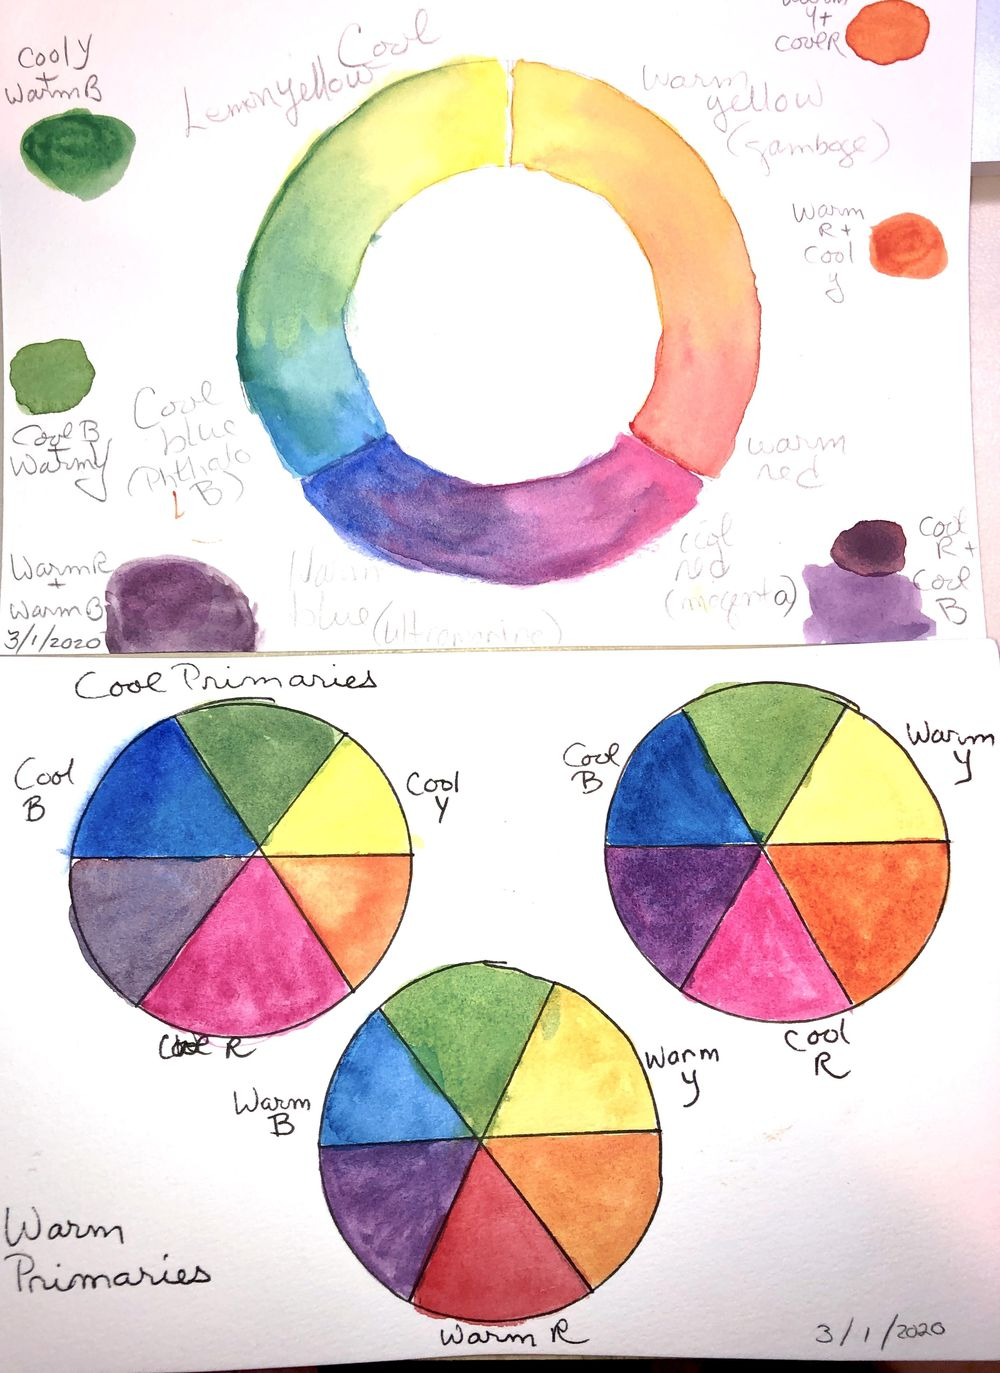 Palette Creation - image 2 - student project